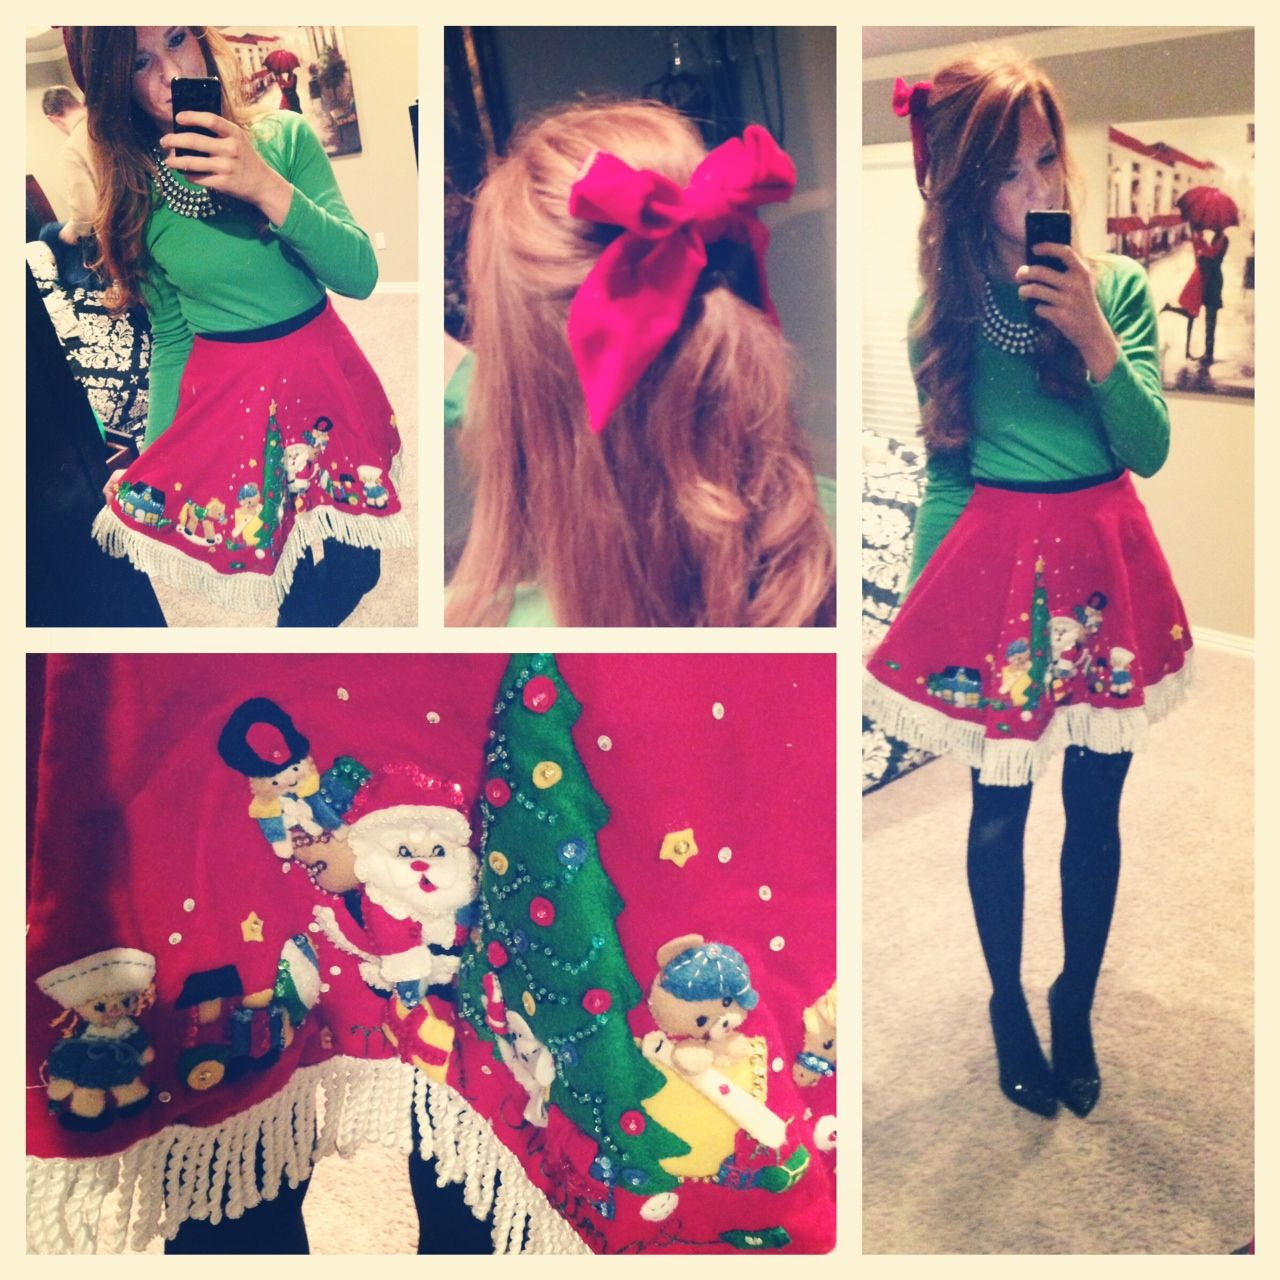 Tacky Christmas Party Outfit Ideas Part - 39: Wear A Tree Skirt! Ugly Sweater Parties Just Got A Bit More